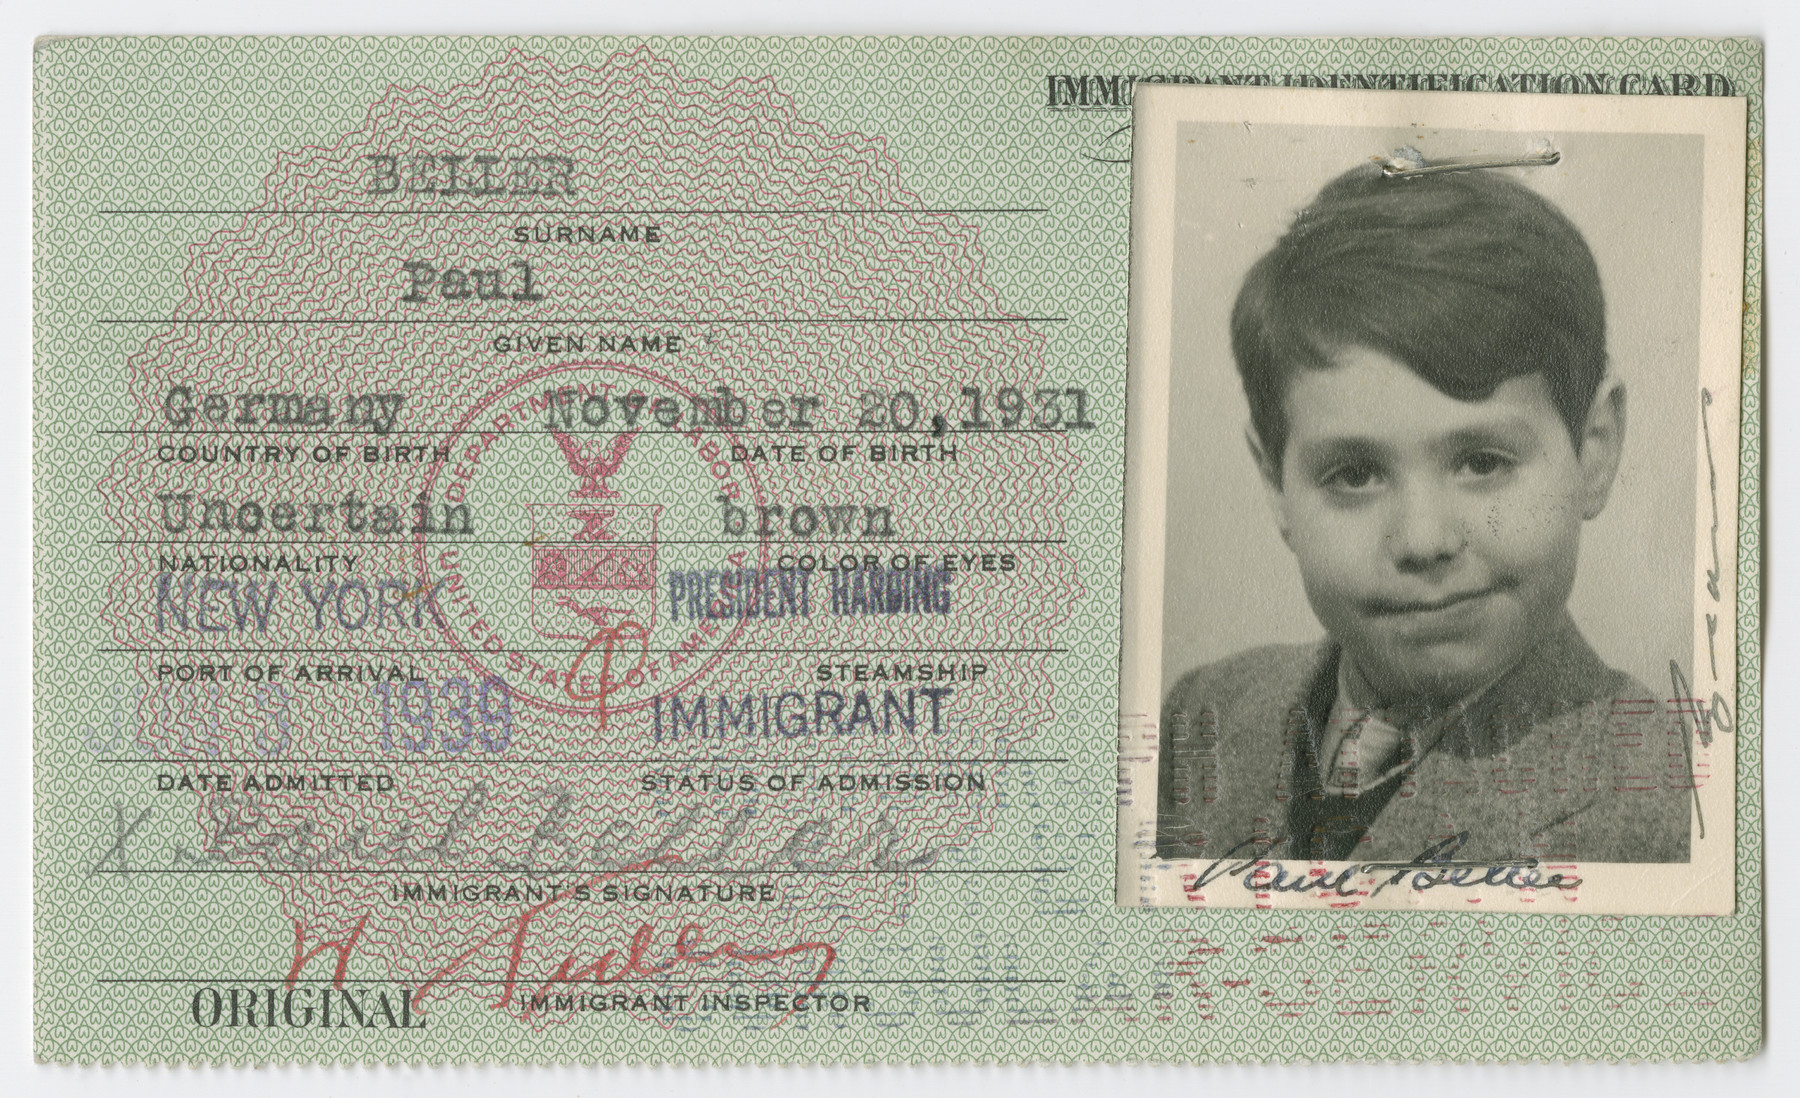 United States Immigrant Identification Card issued to Paul Beller.  It states he was born in Germany though he was born in Vienna.